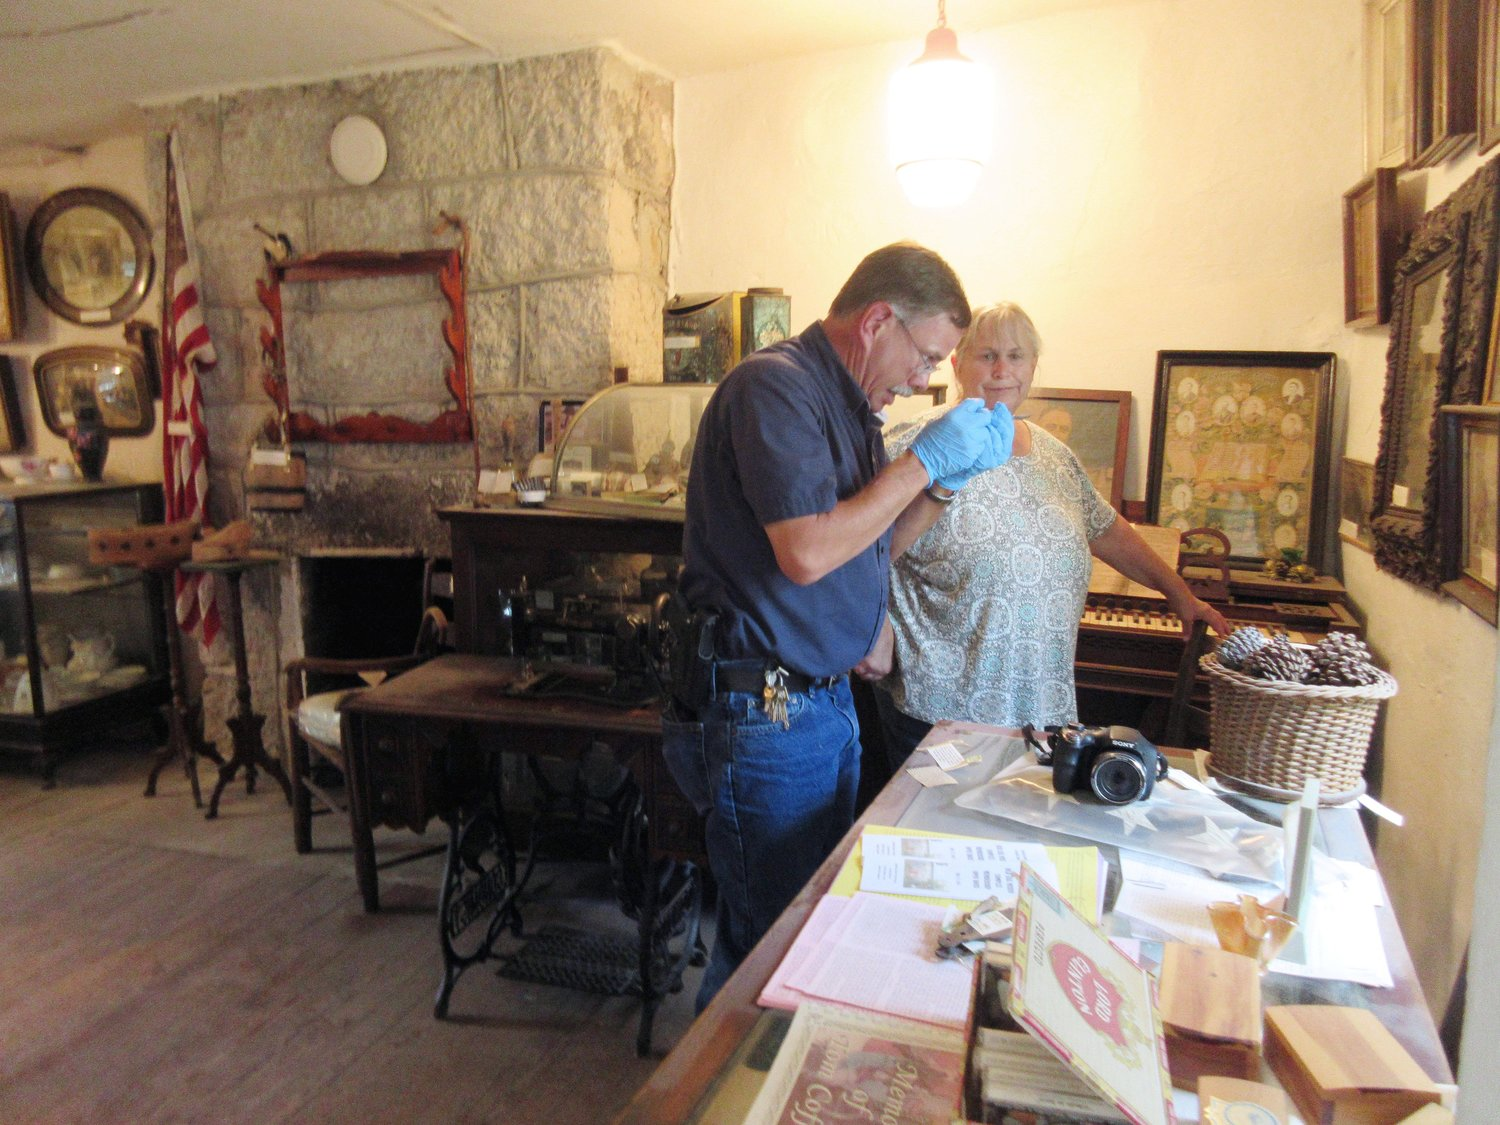 Vienna Police Chief Shannon Thompson is pictured speaking to Gail Howard as he investigated the break-in and theft at the Old Jail Museum in Vienna, which occurred last Tuesday night.